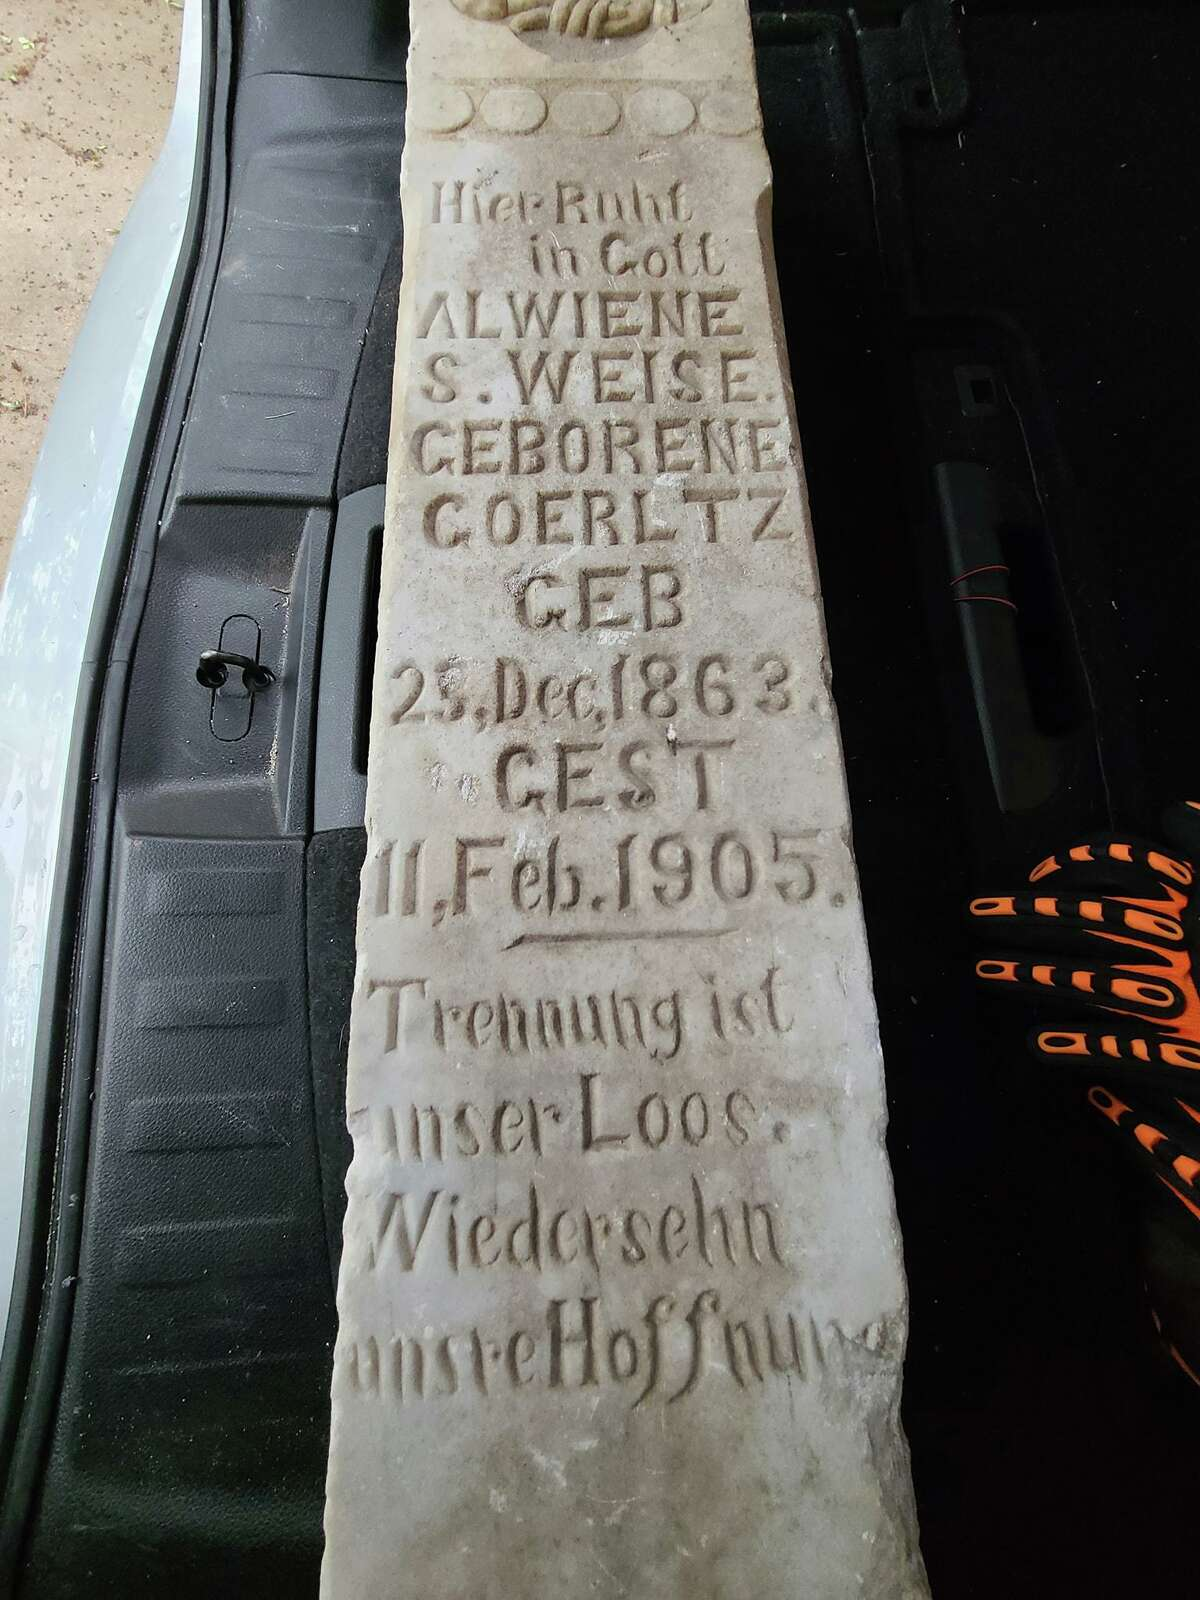 The tombstone of Alwiene S. Weise, with a death date of Feb. 11, 1905. She was only 41 when she died.